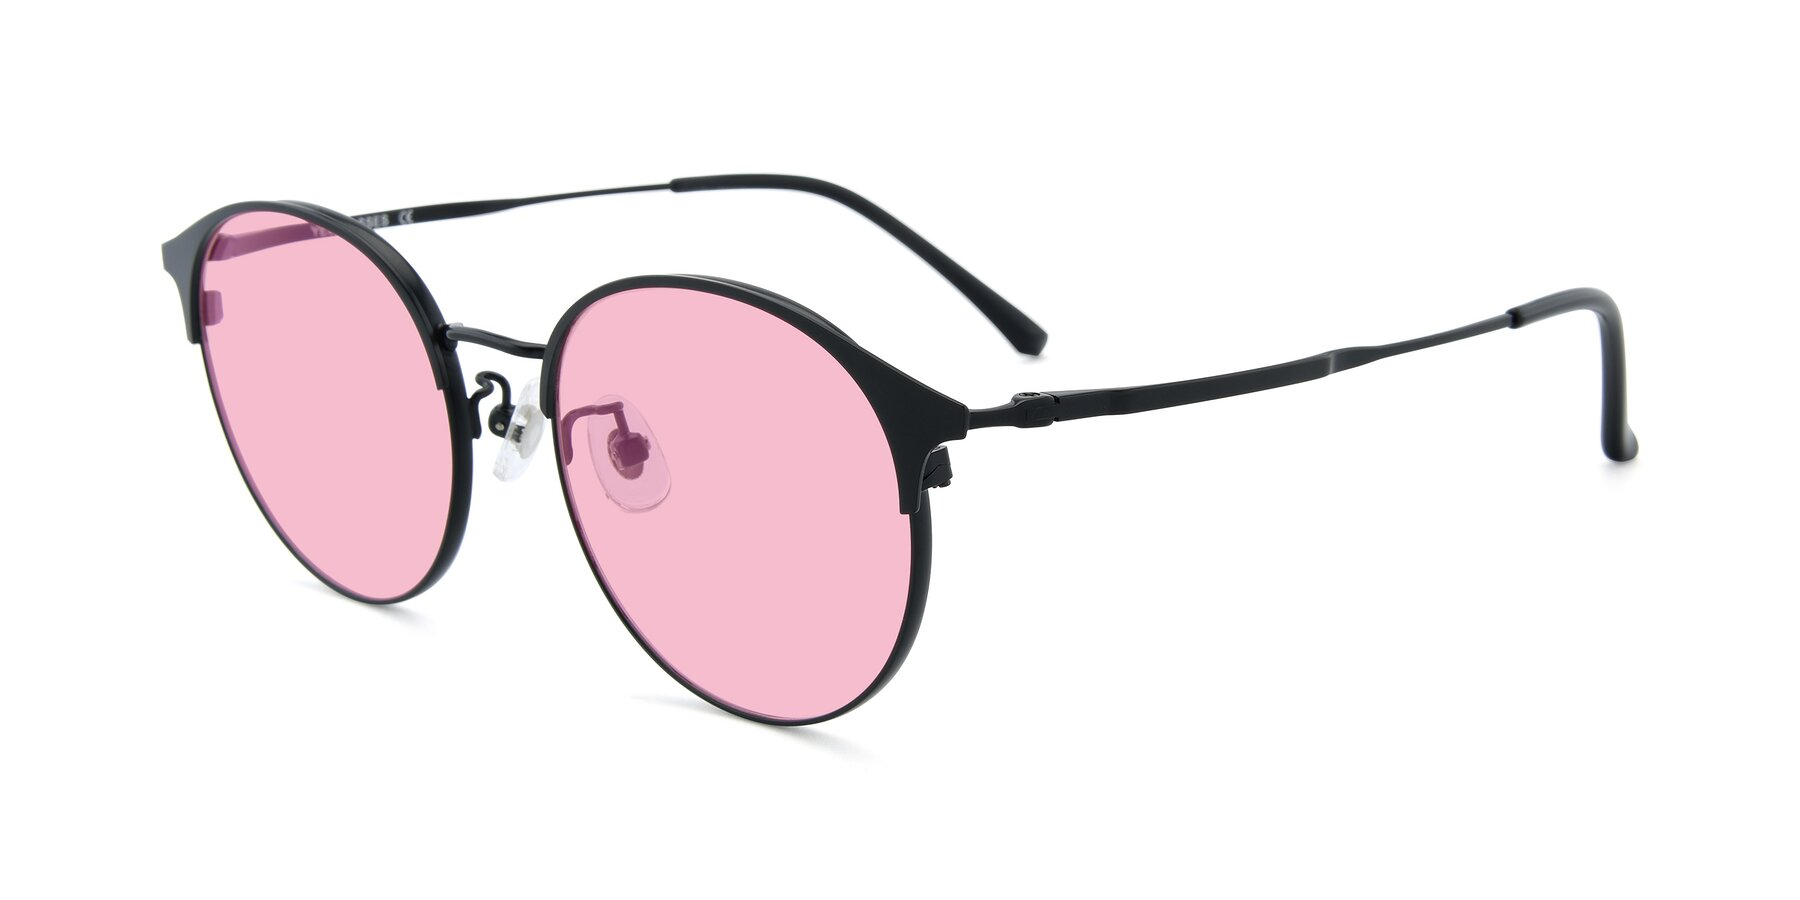 Angle of XC-8031 in Matte Black with Medium Pink Tinted Lenses